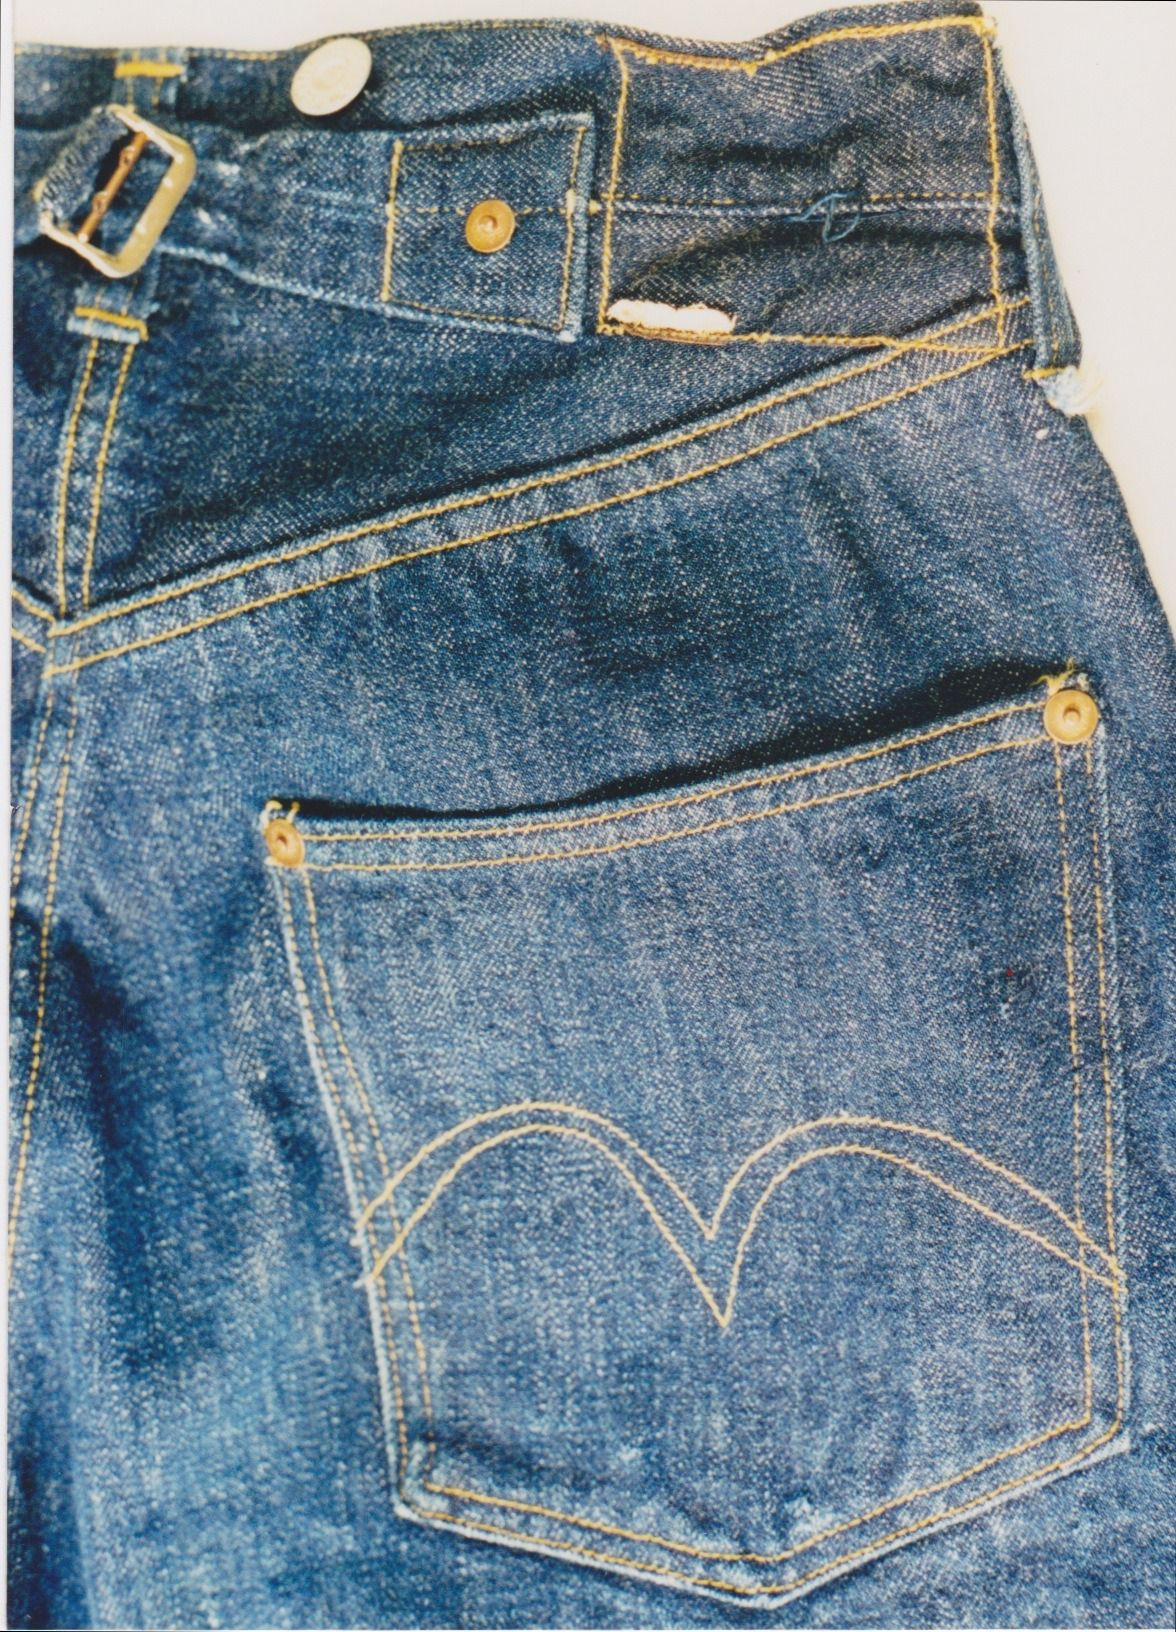 Pre 1936 Levi exposed rivet buckle back 201xx Jeans em 2019